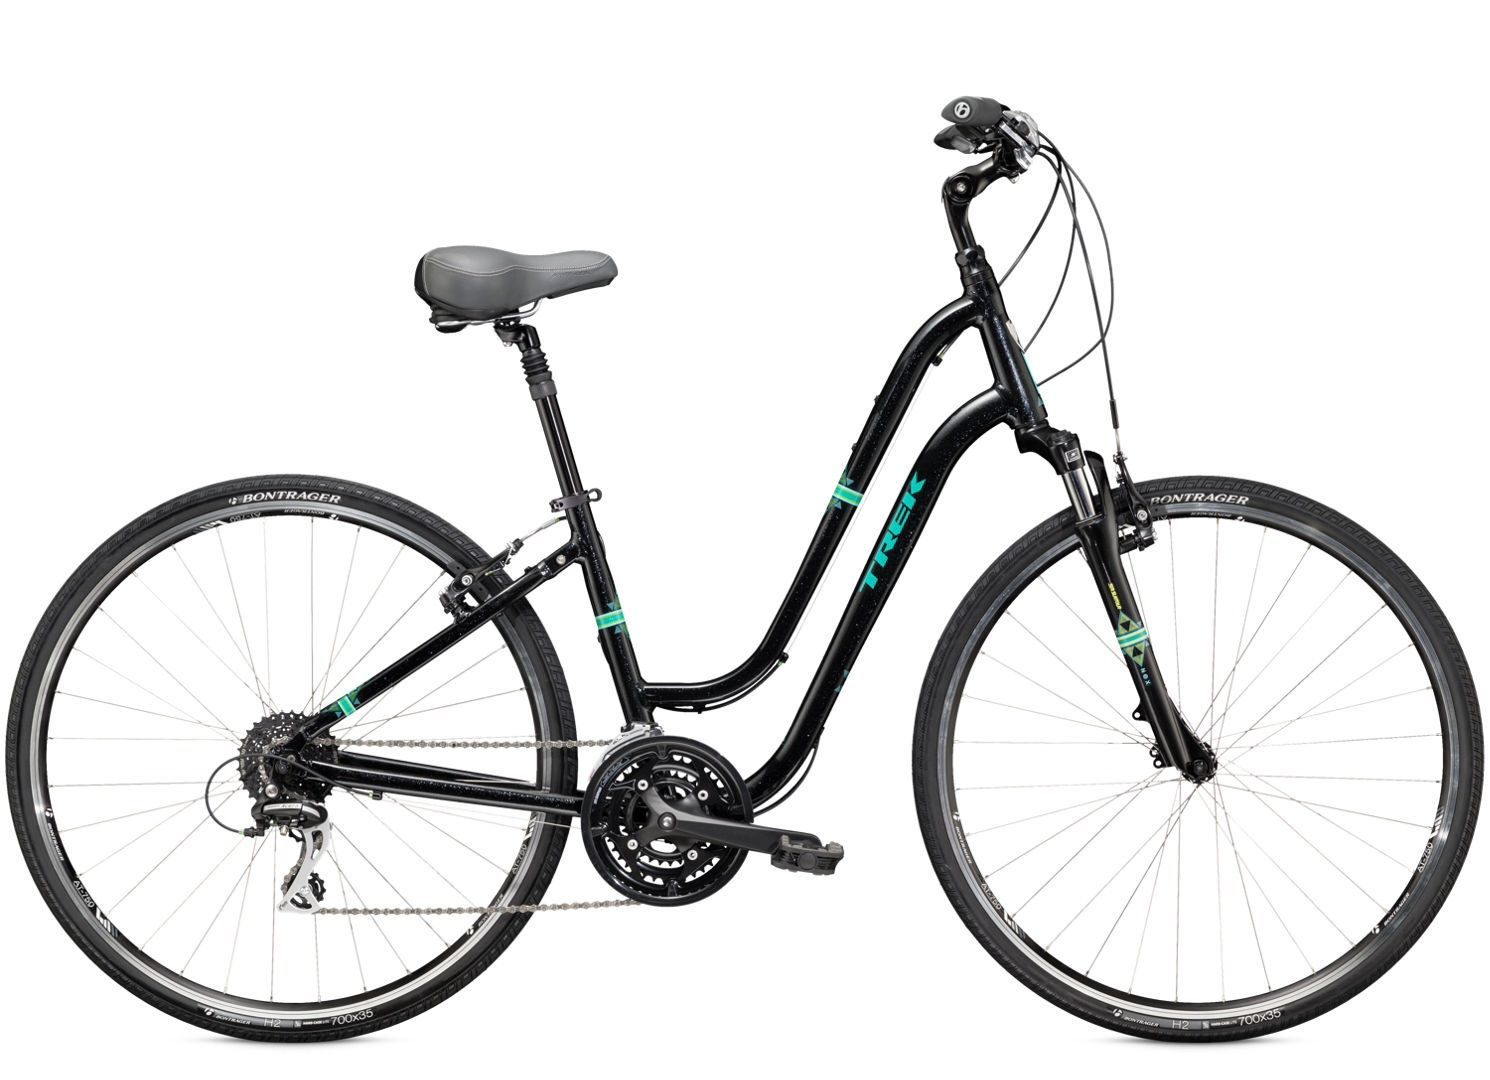 2015 Trek Verve 3 Wsd 659 In 2020 Trek Bicycle Trek Bikes Bike